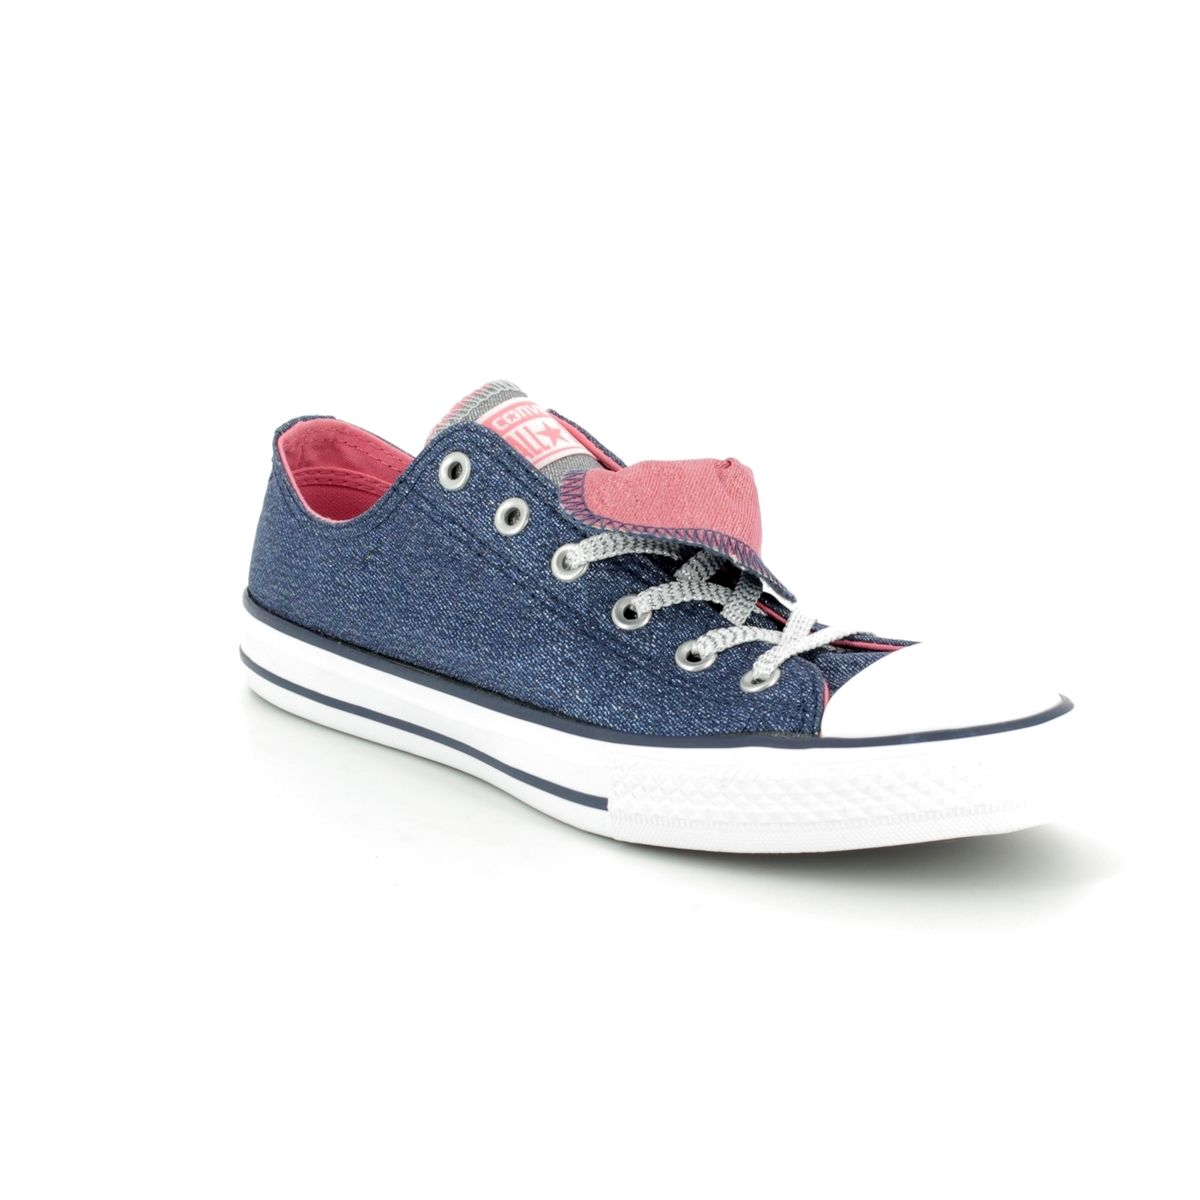 07660fd2ae3 Converse Trainers - Navy - 658112C Chuck Taylor All Star Double Tongue OX